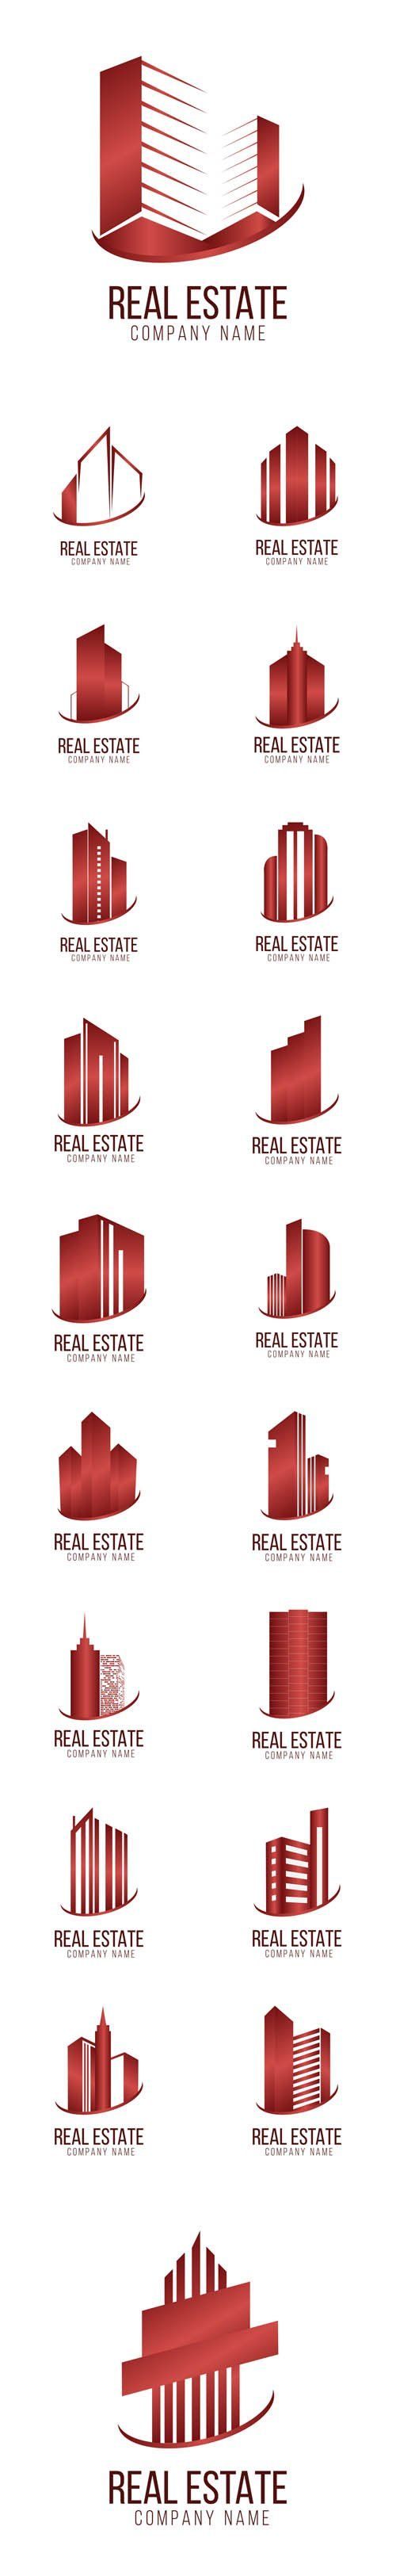 Vector Real Estate Logo Architecture Symbol                                                                                                                                                                                 More